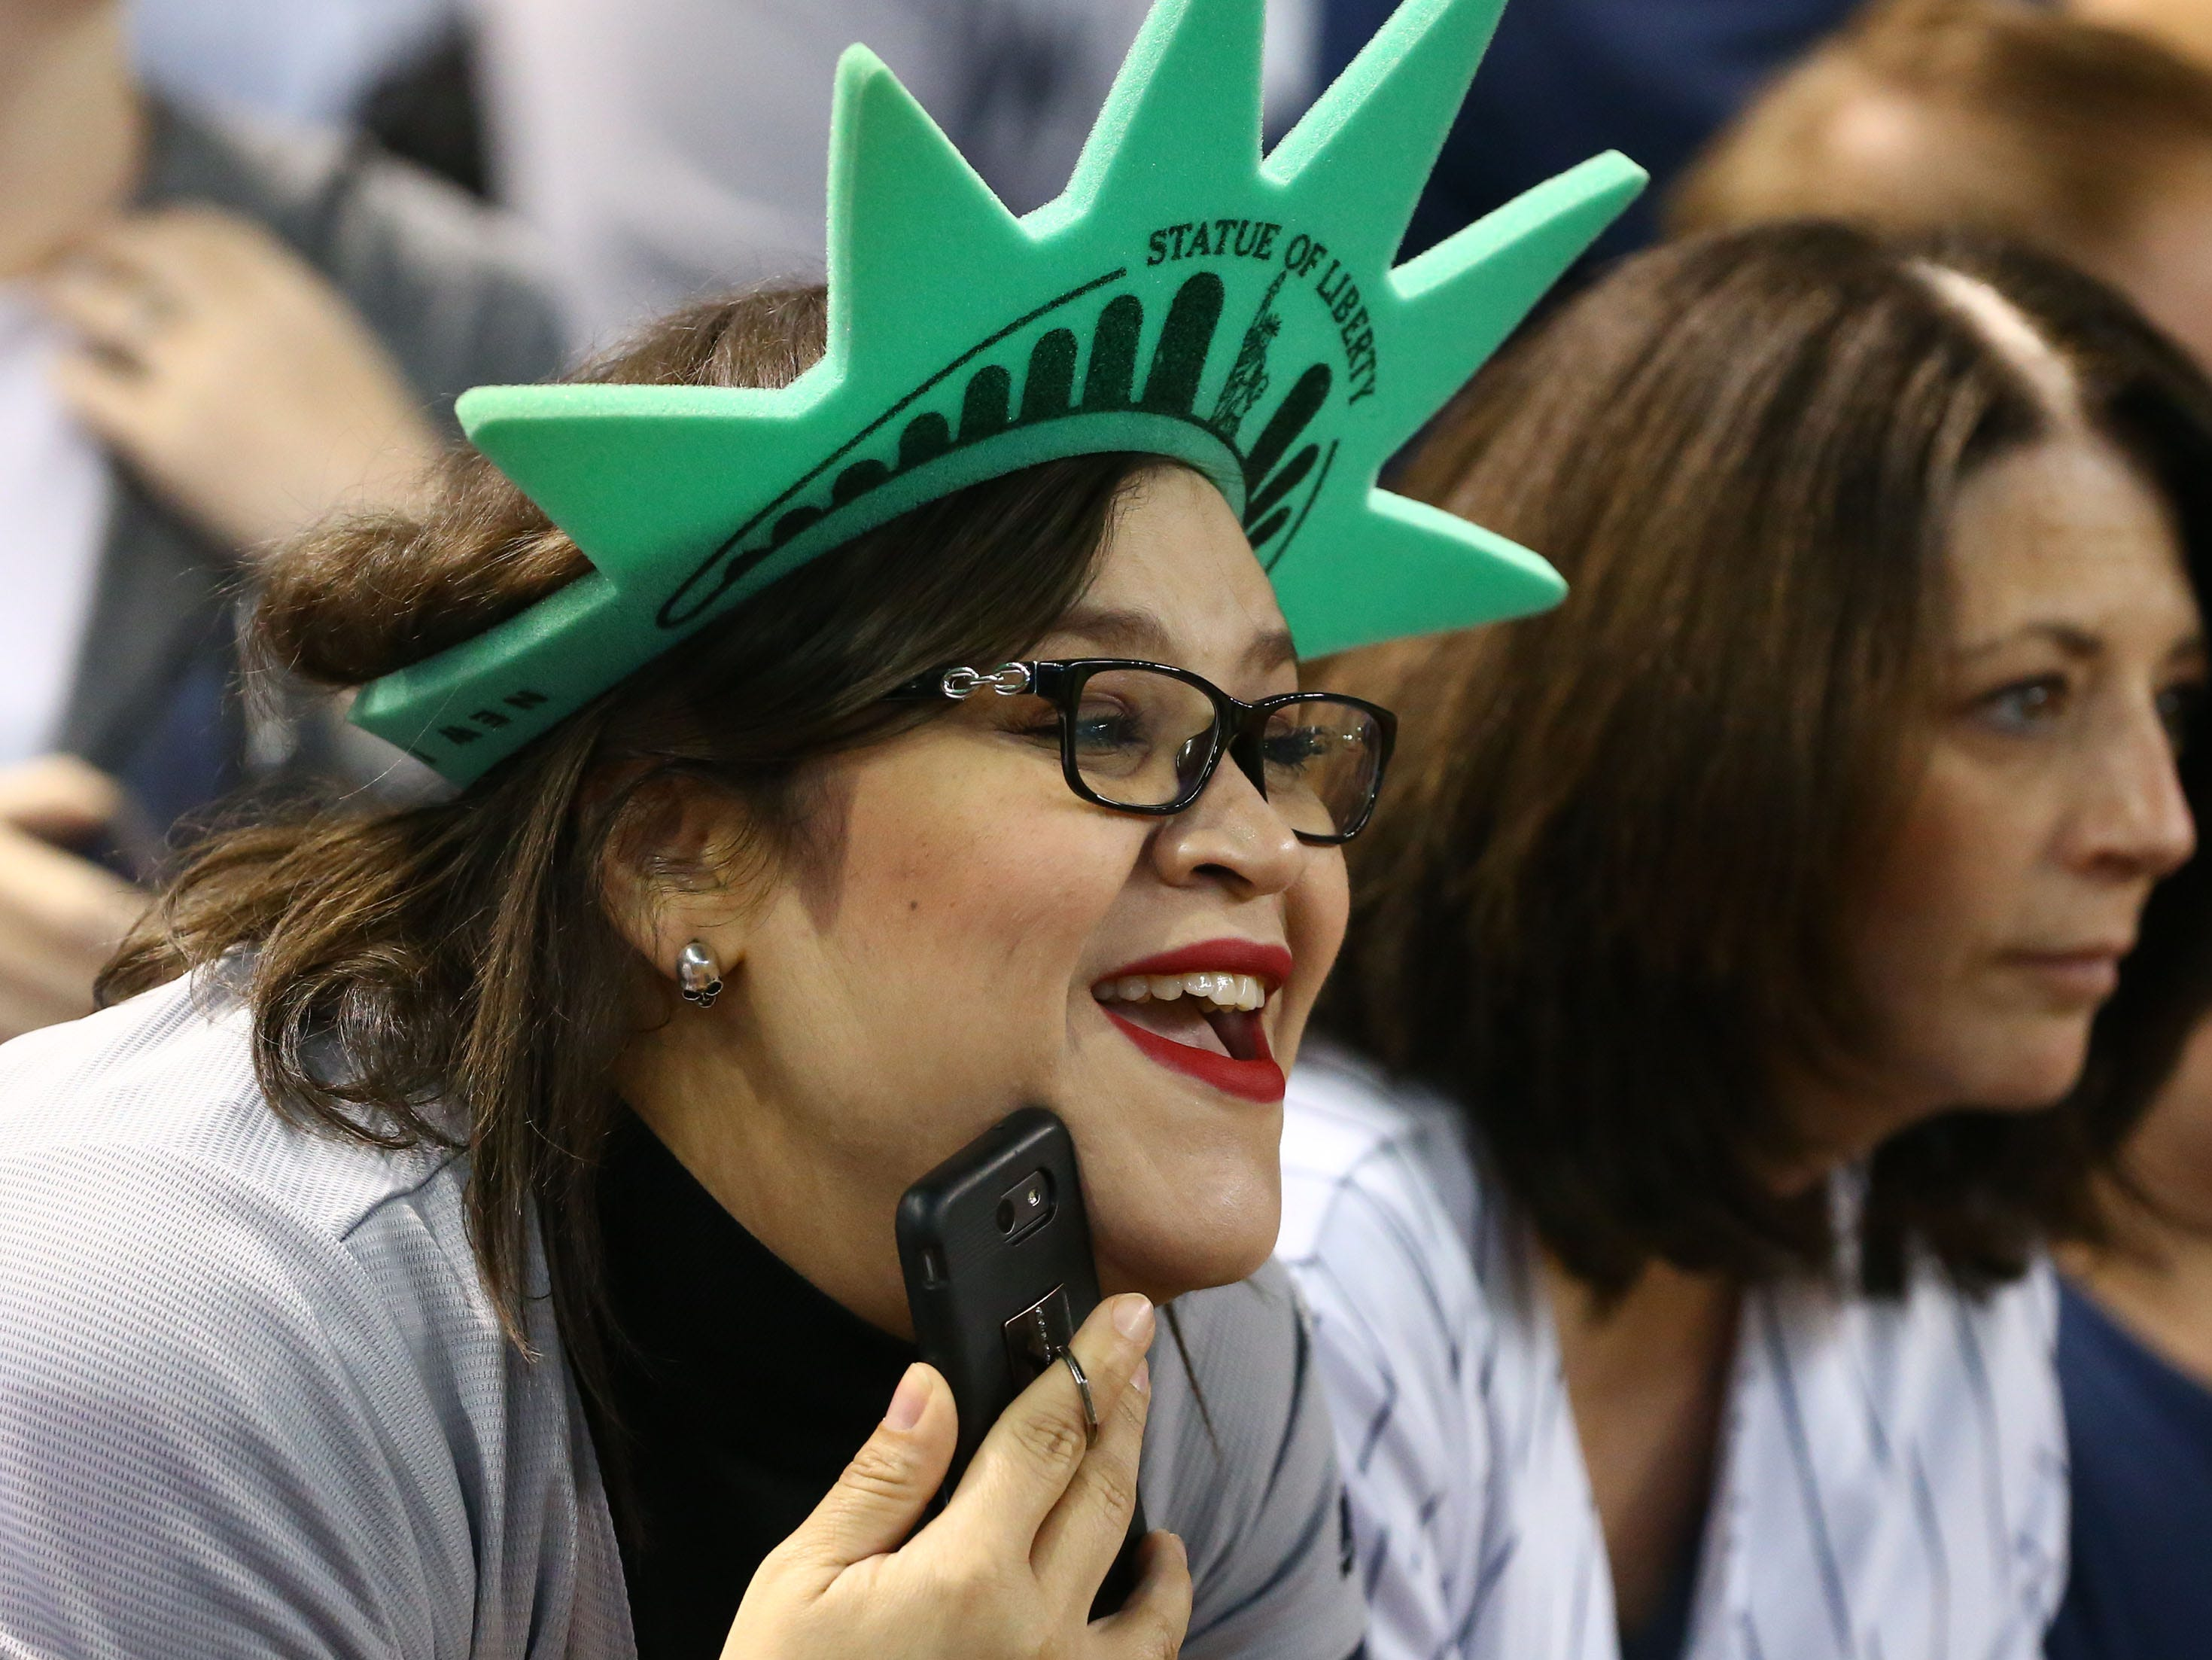 New York Yankees fan Whitney Quiroz from El Centro, Cal. watches the Yankees warm-up on Apr. 30, 2019 at Chase Field in Phoenix, Ariz.